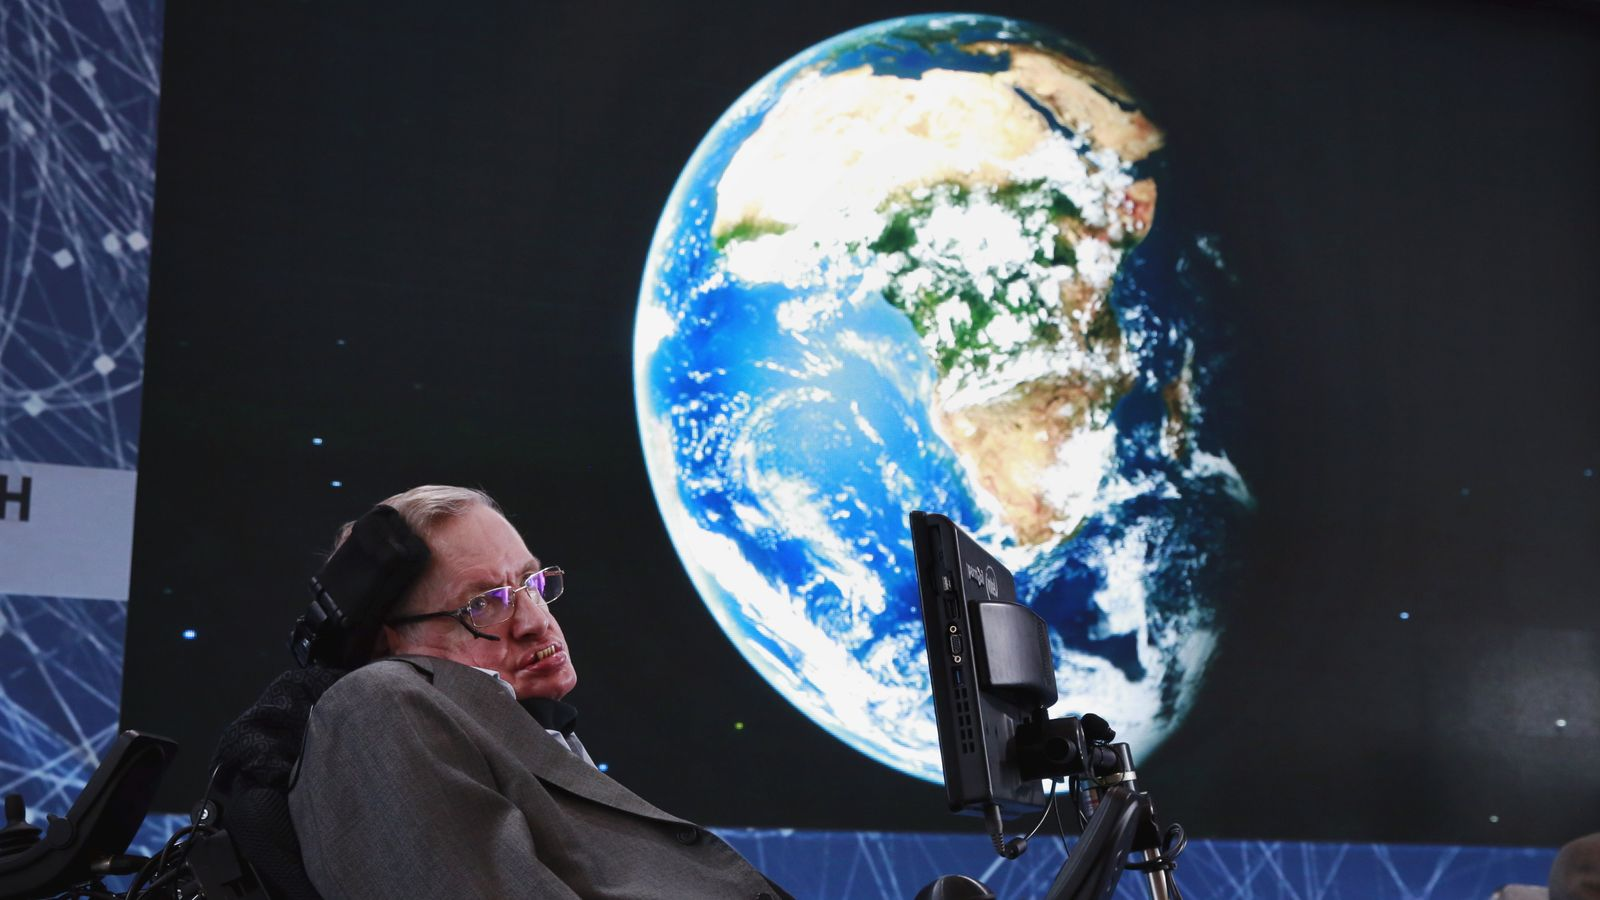 Stephen Hawking has passed away at 76 years old